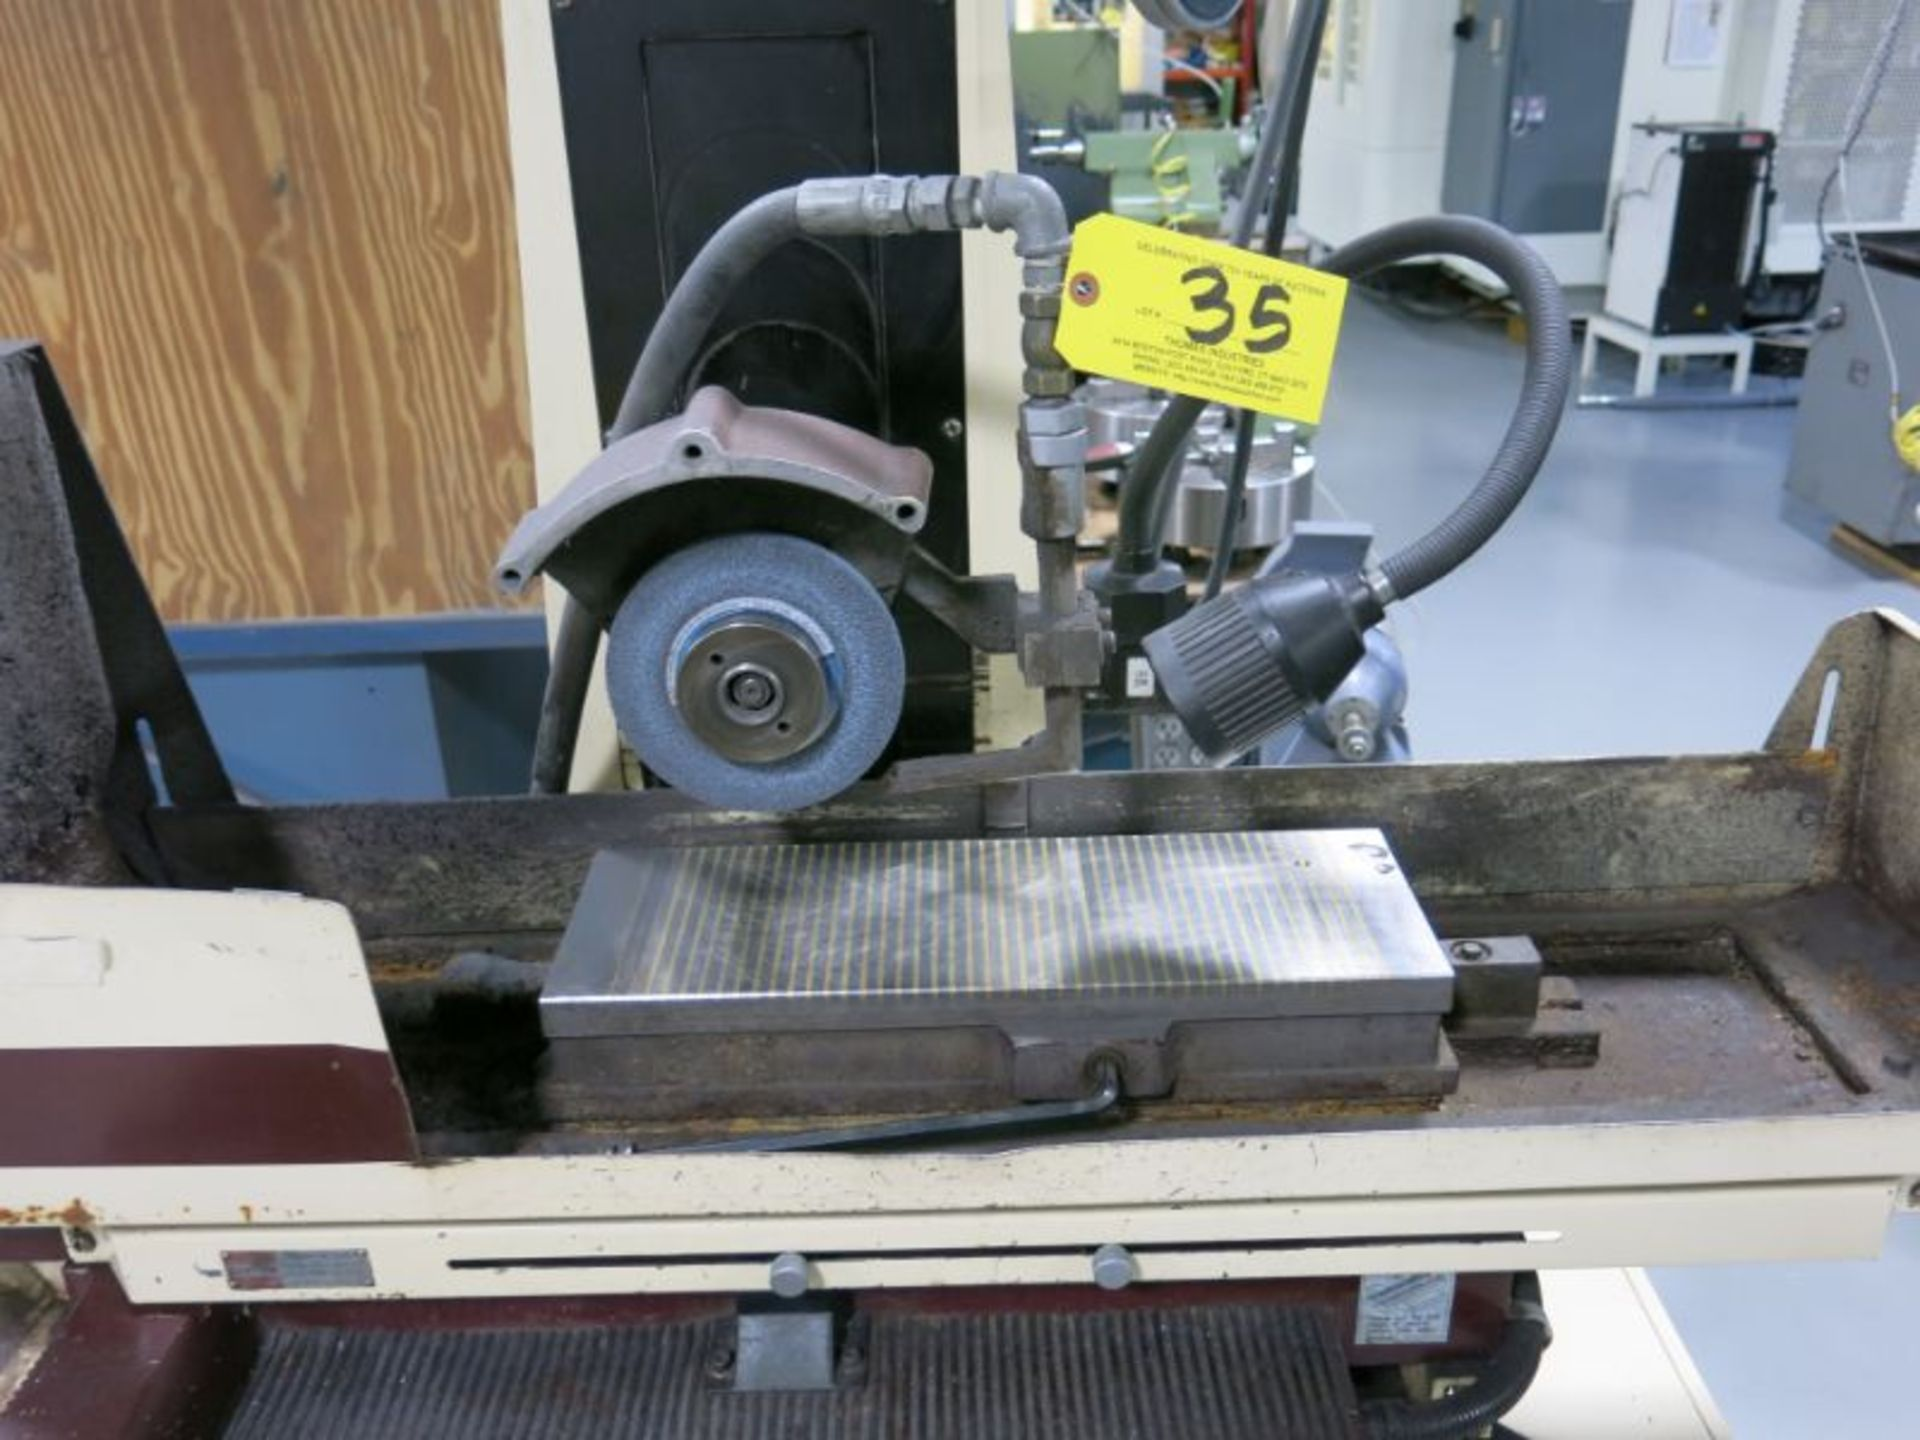 1998 Chevalier/Falcon Surface Grinder - Image 3 of 4